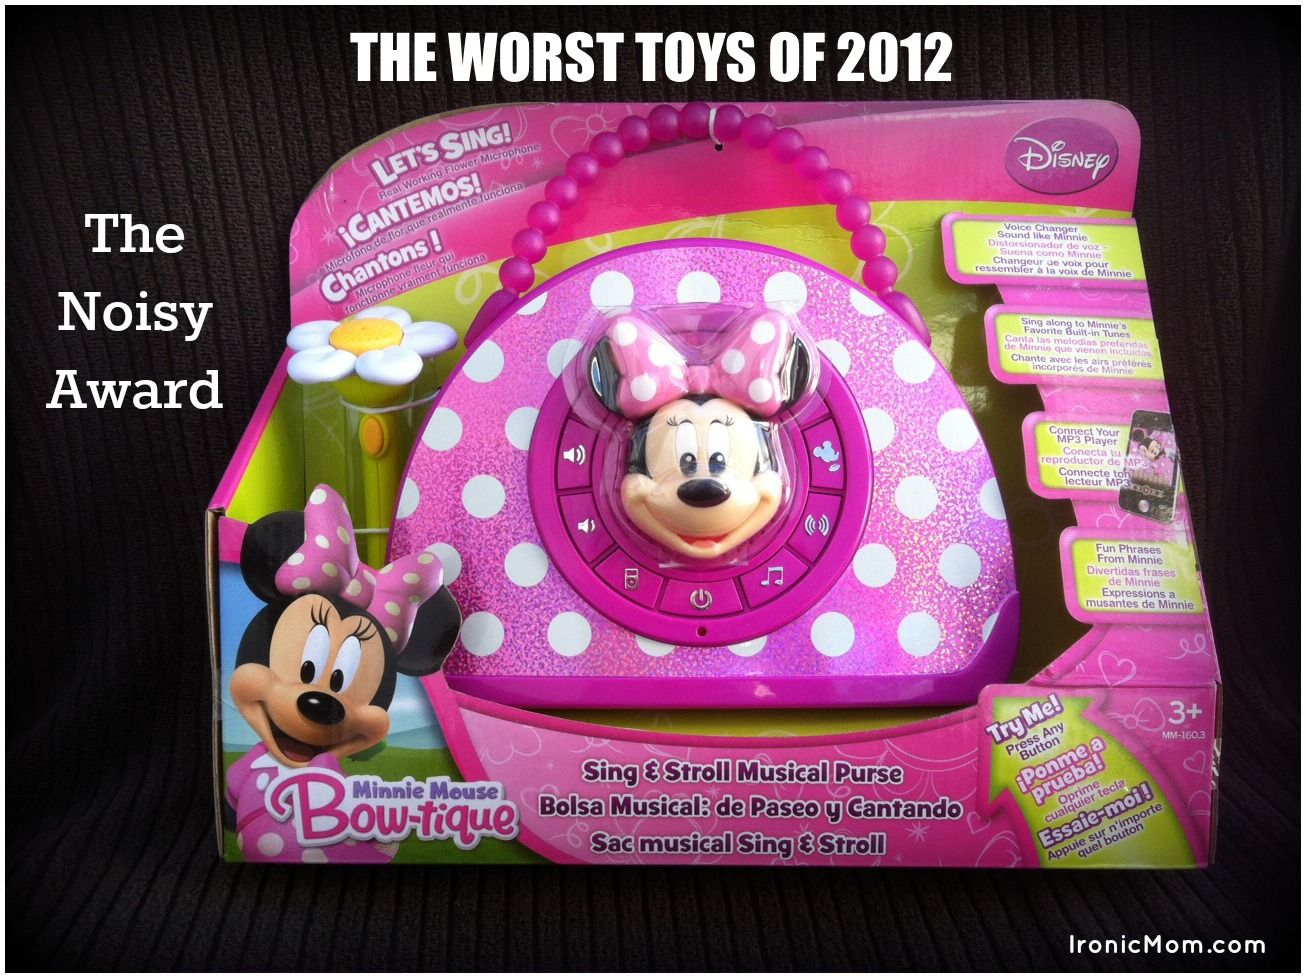 Toys and me images  SAVE YOURSELF